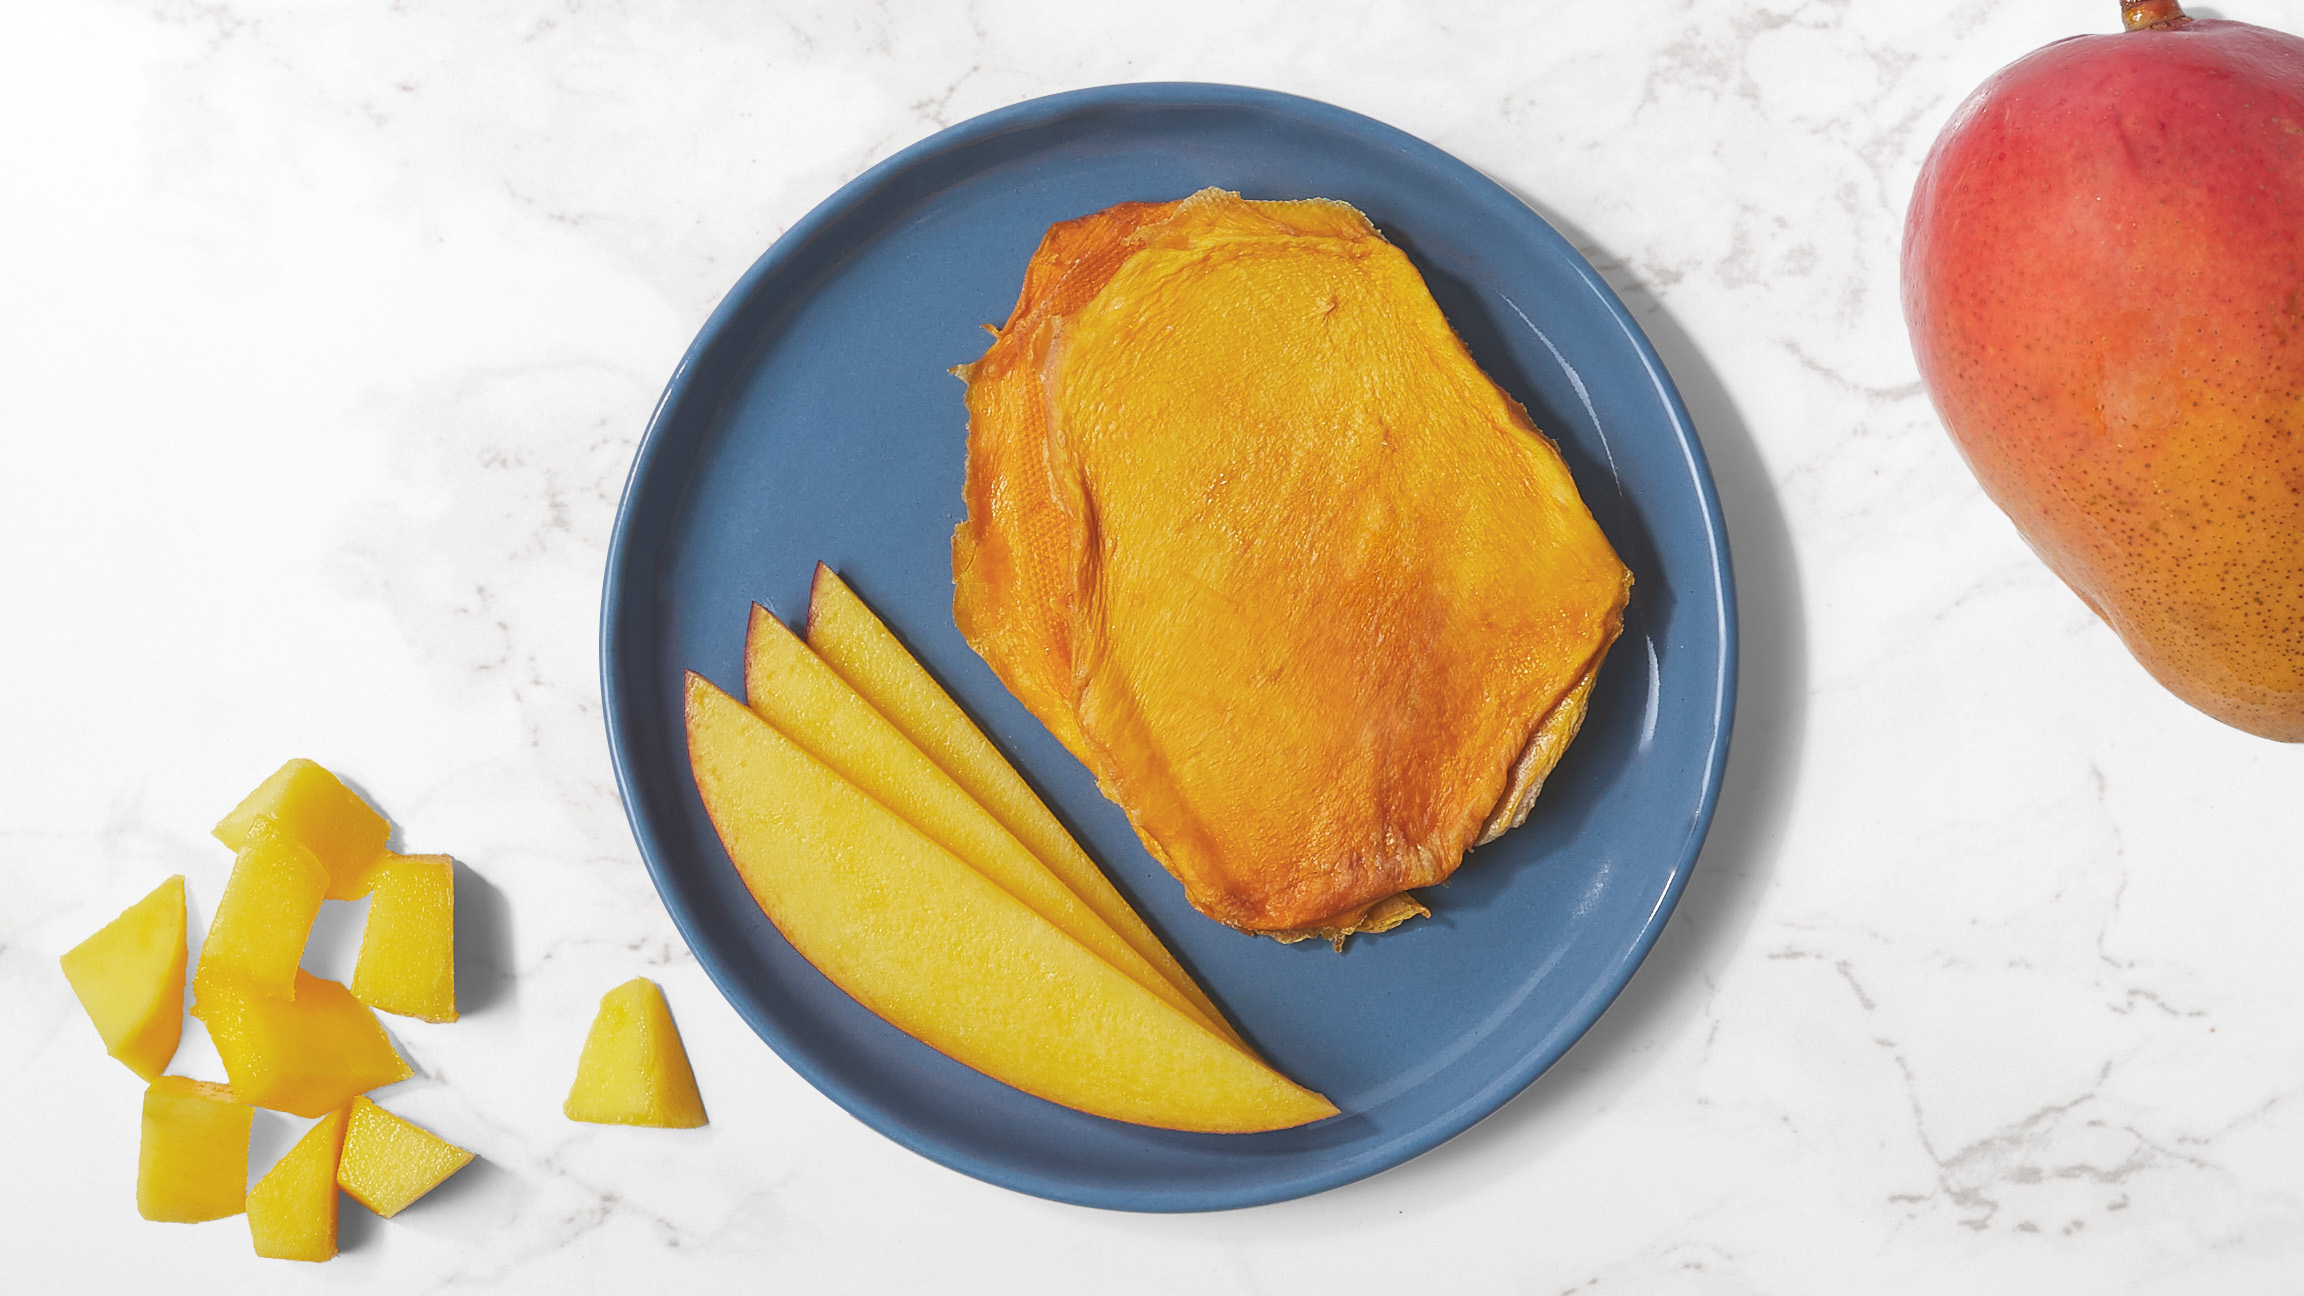 Dried and fresh mango slices on a blue plate with fresh pieces of mango and a whole mango on a white marble counter top